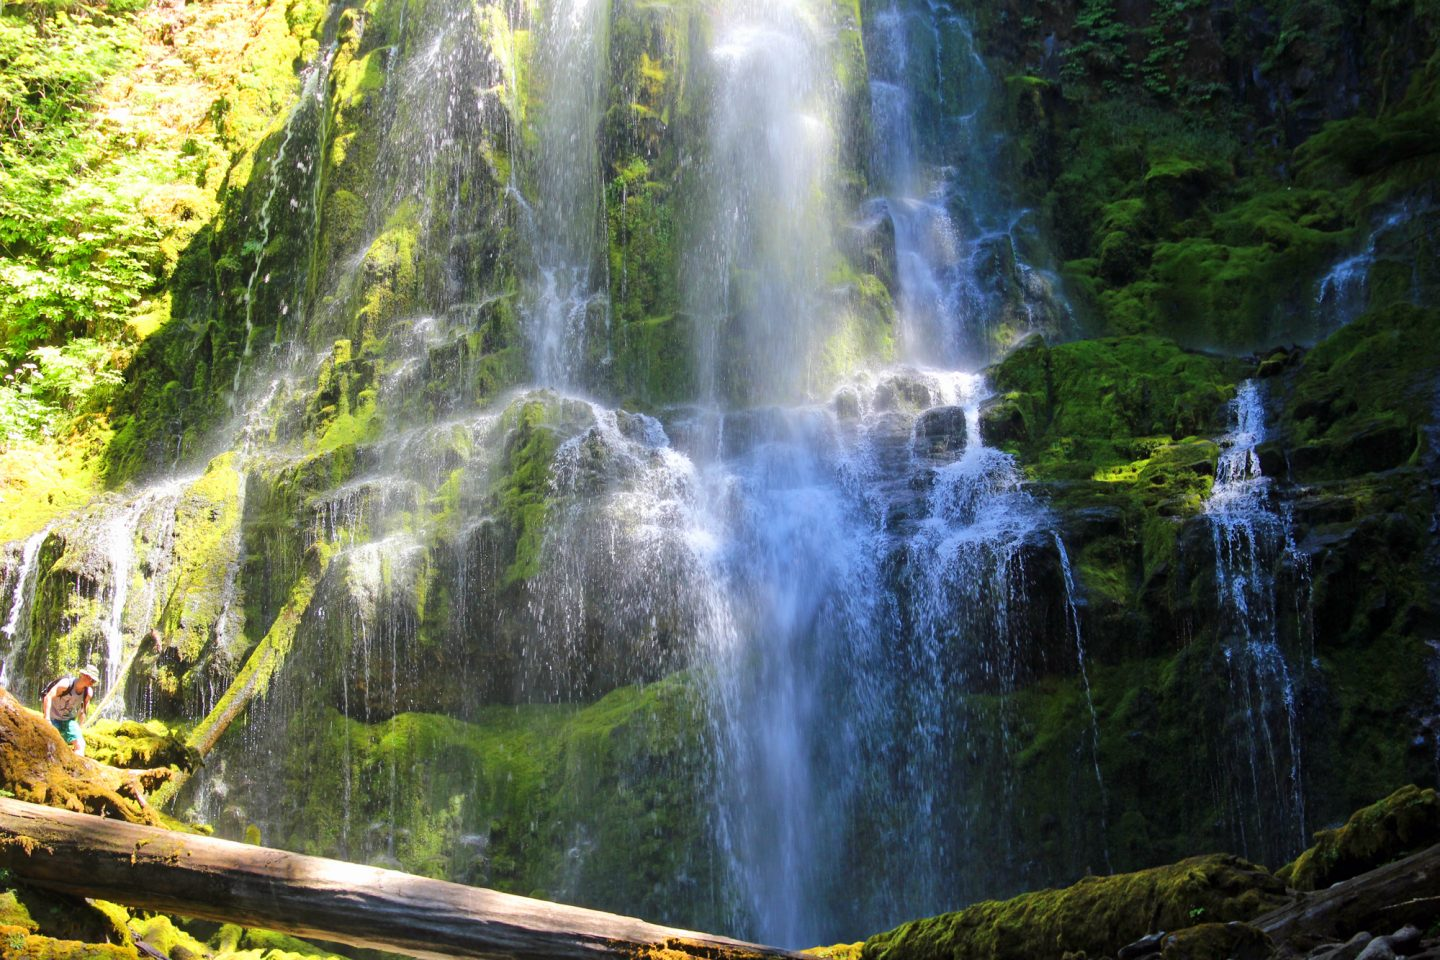 Hike to the bottom of Proxy Falls for a beautiful view.  One of the best waterfall hikes in Oregon.